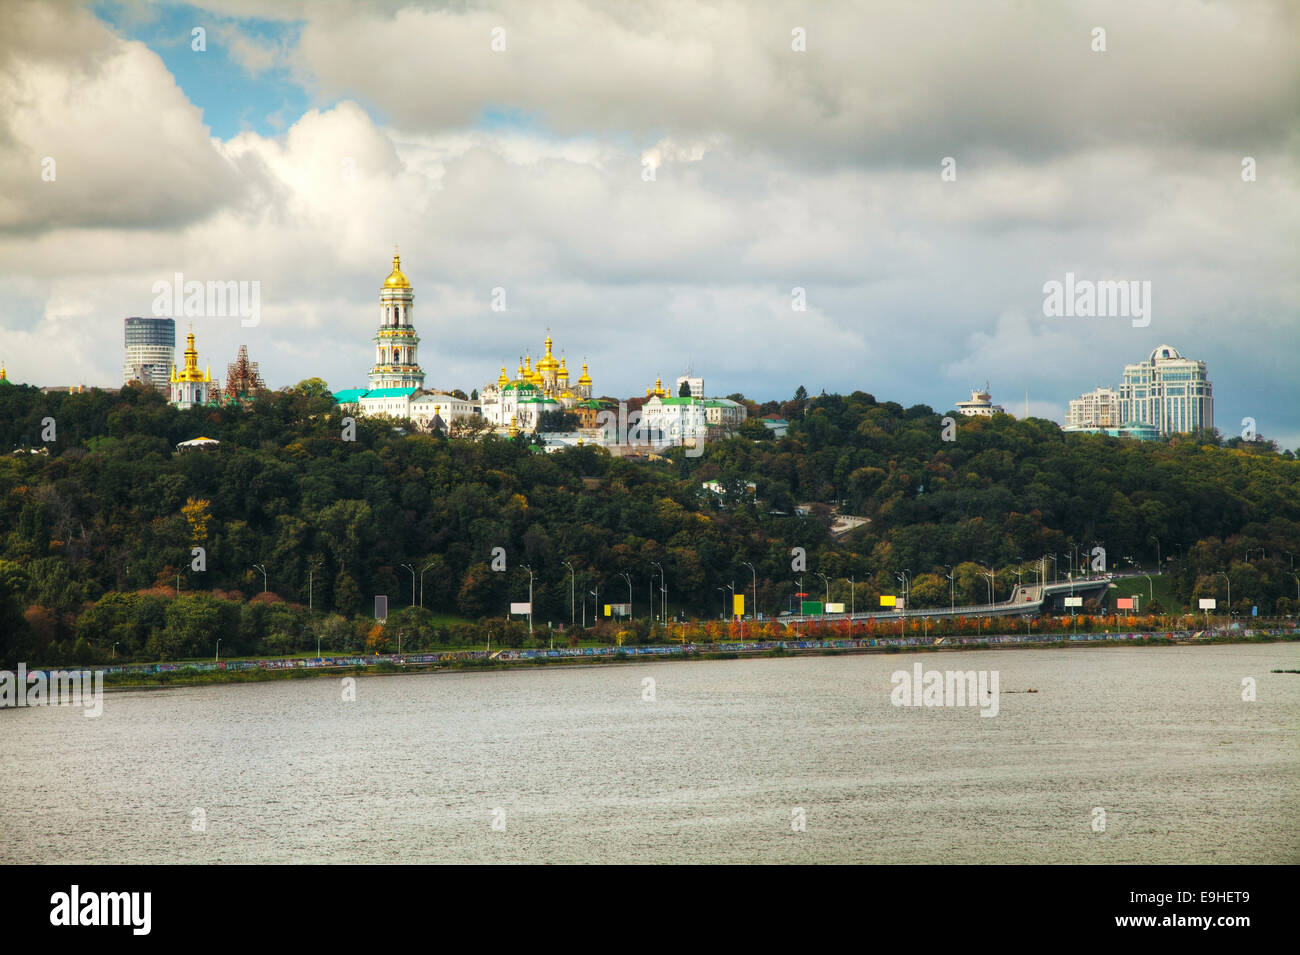 Overview of Kiev on a cloudy day - Stock Image